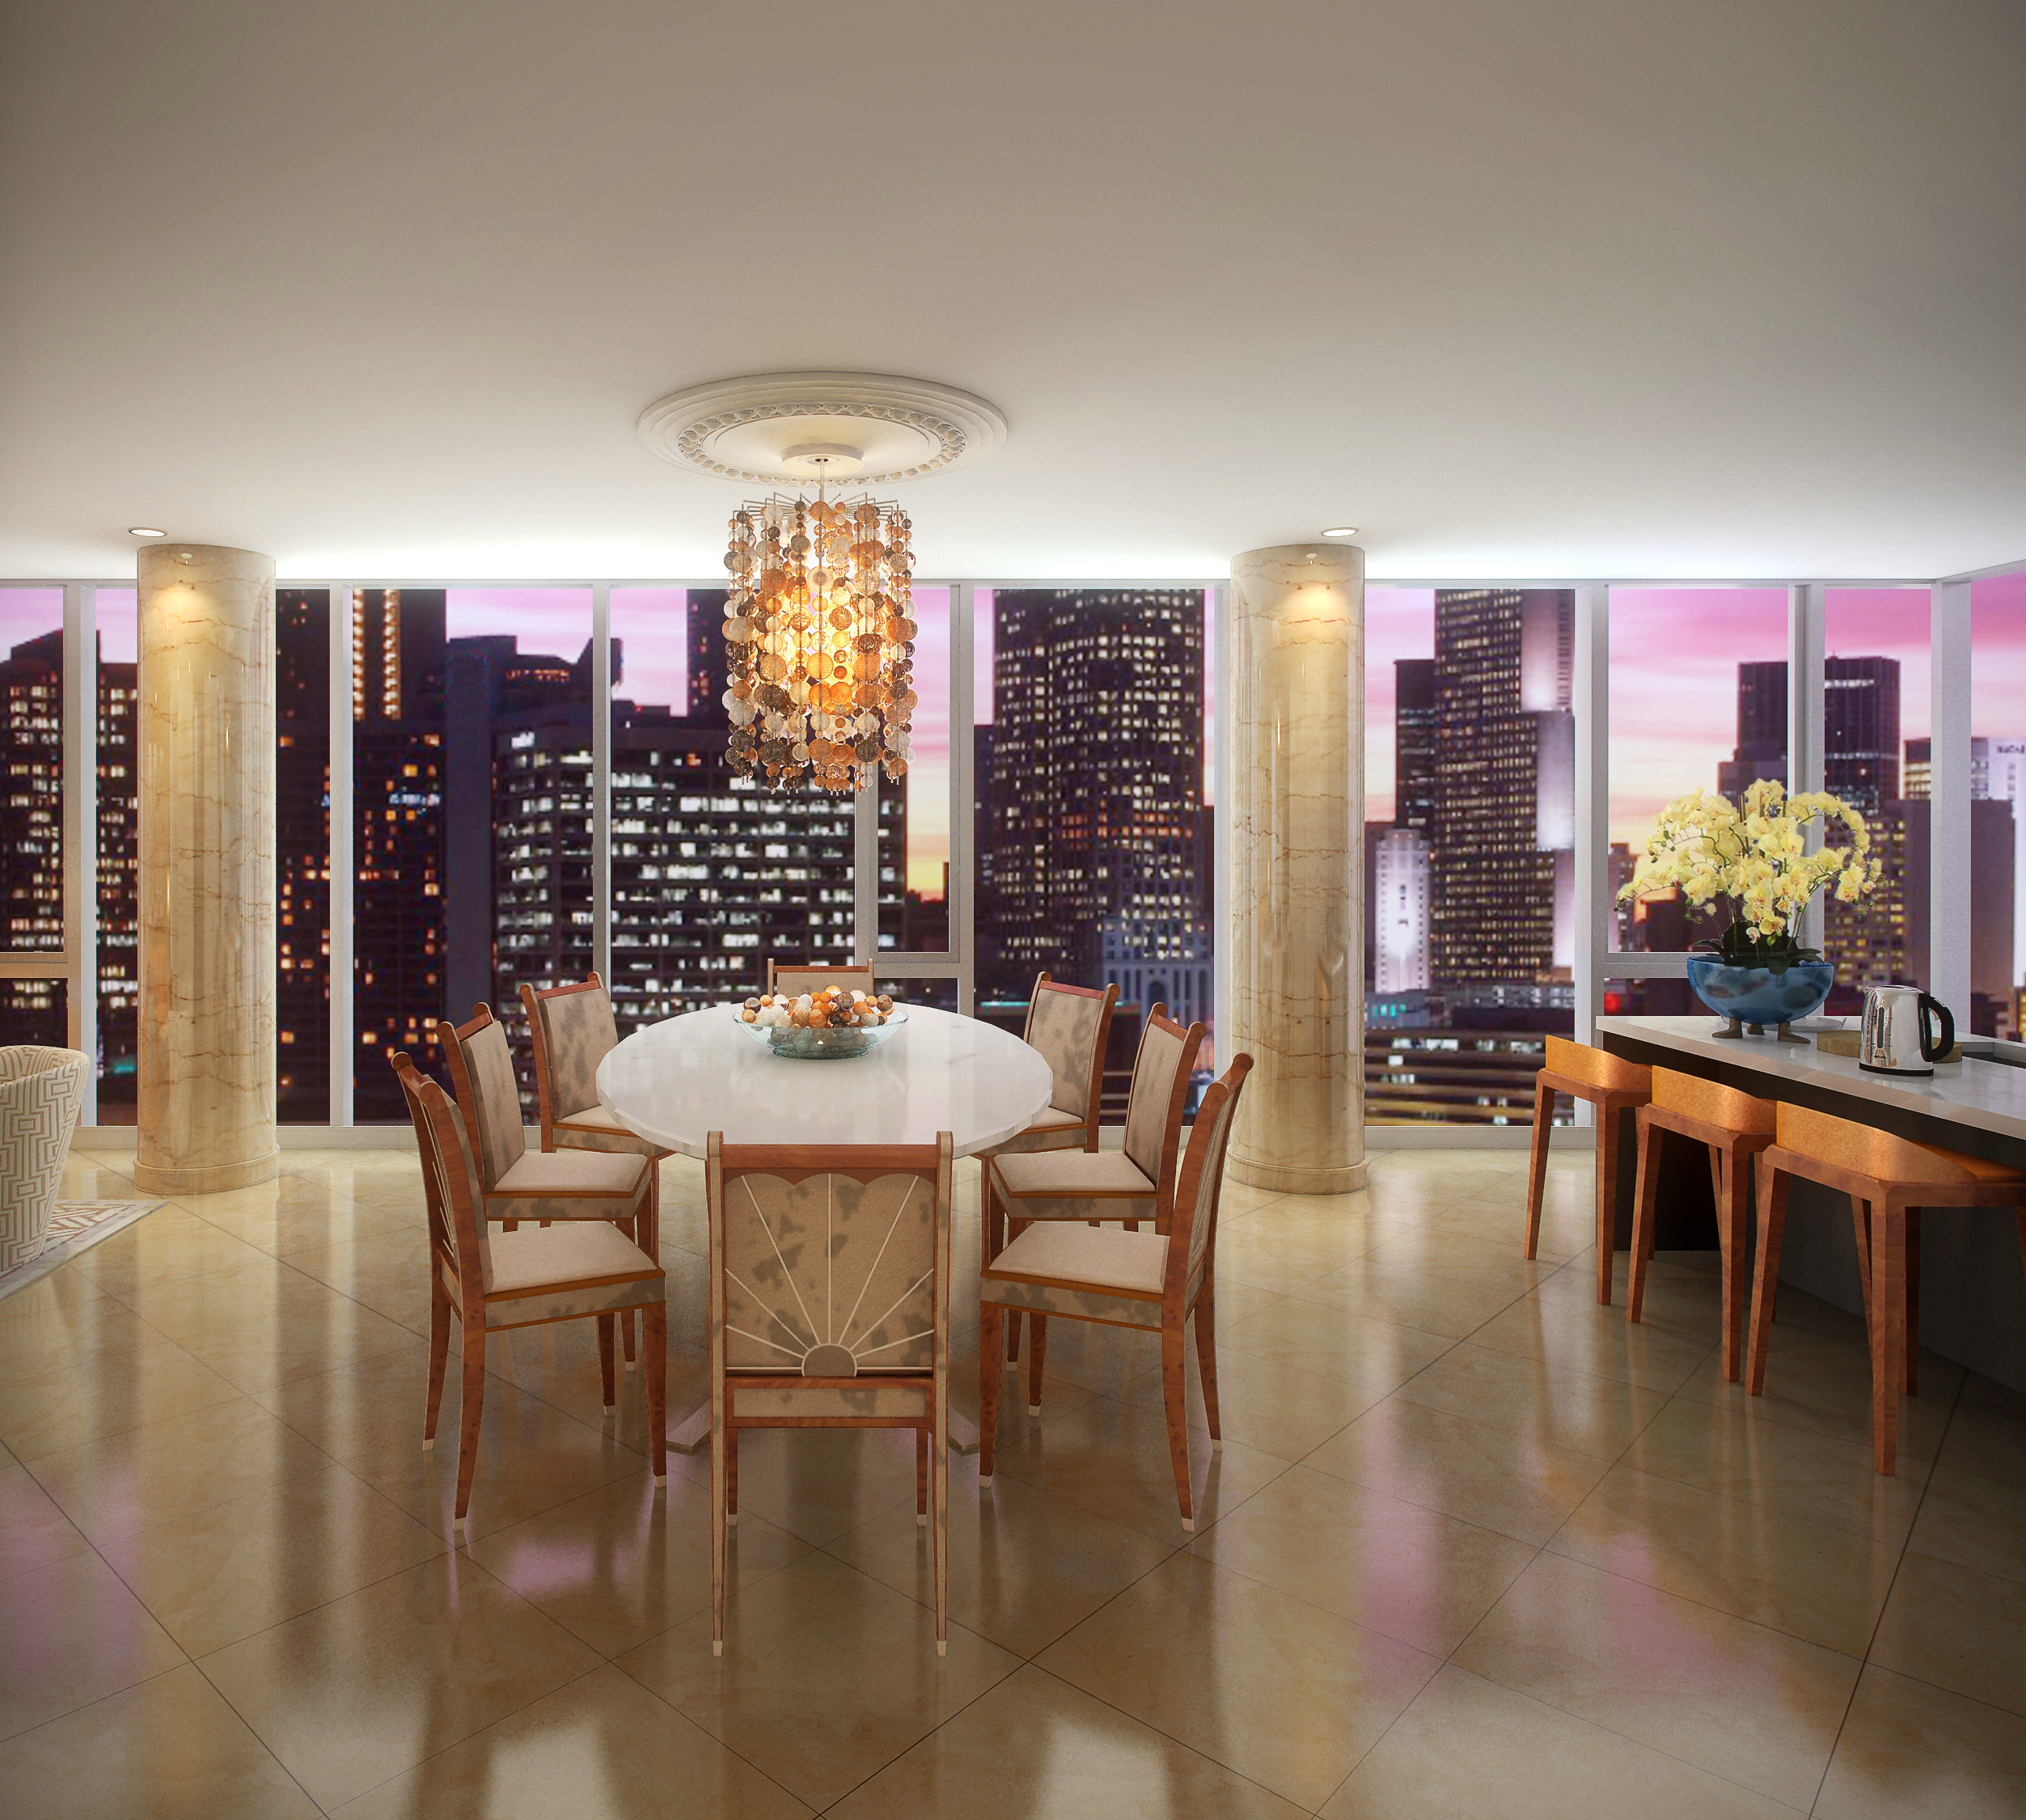 Chicago Luxury - 4 EAST ELM - LAYOUT 3 DINING ROOM - HI-RES